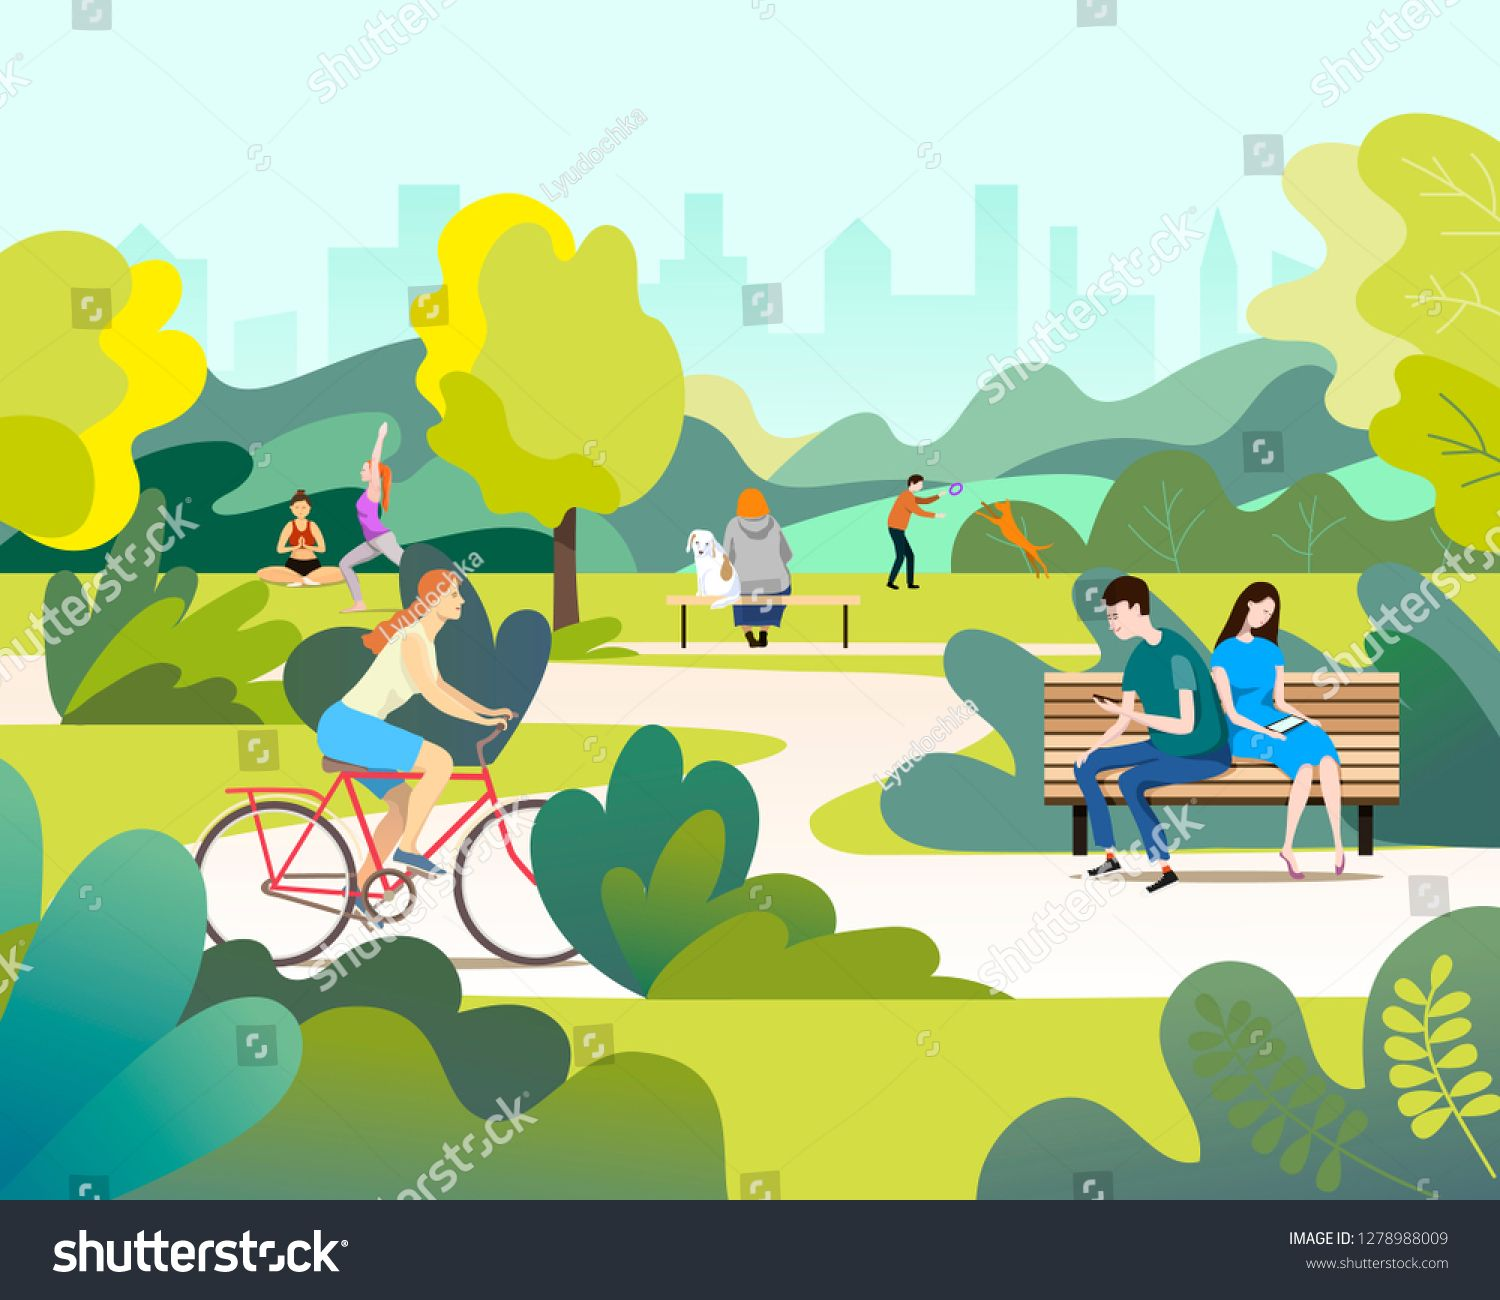 People Relaxing In Beautiful Urban Park Walking Riding Bicycle And Communicating City Park Vector Illustration Sponsor Urban Park Ride Bicycle Walking People